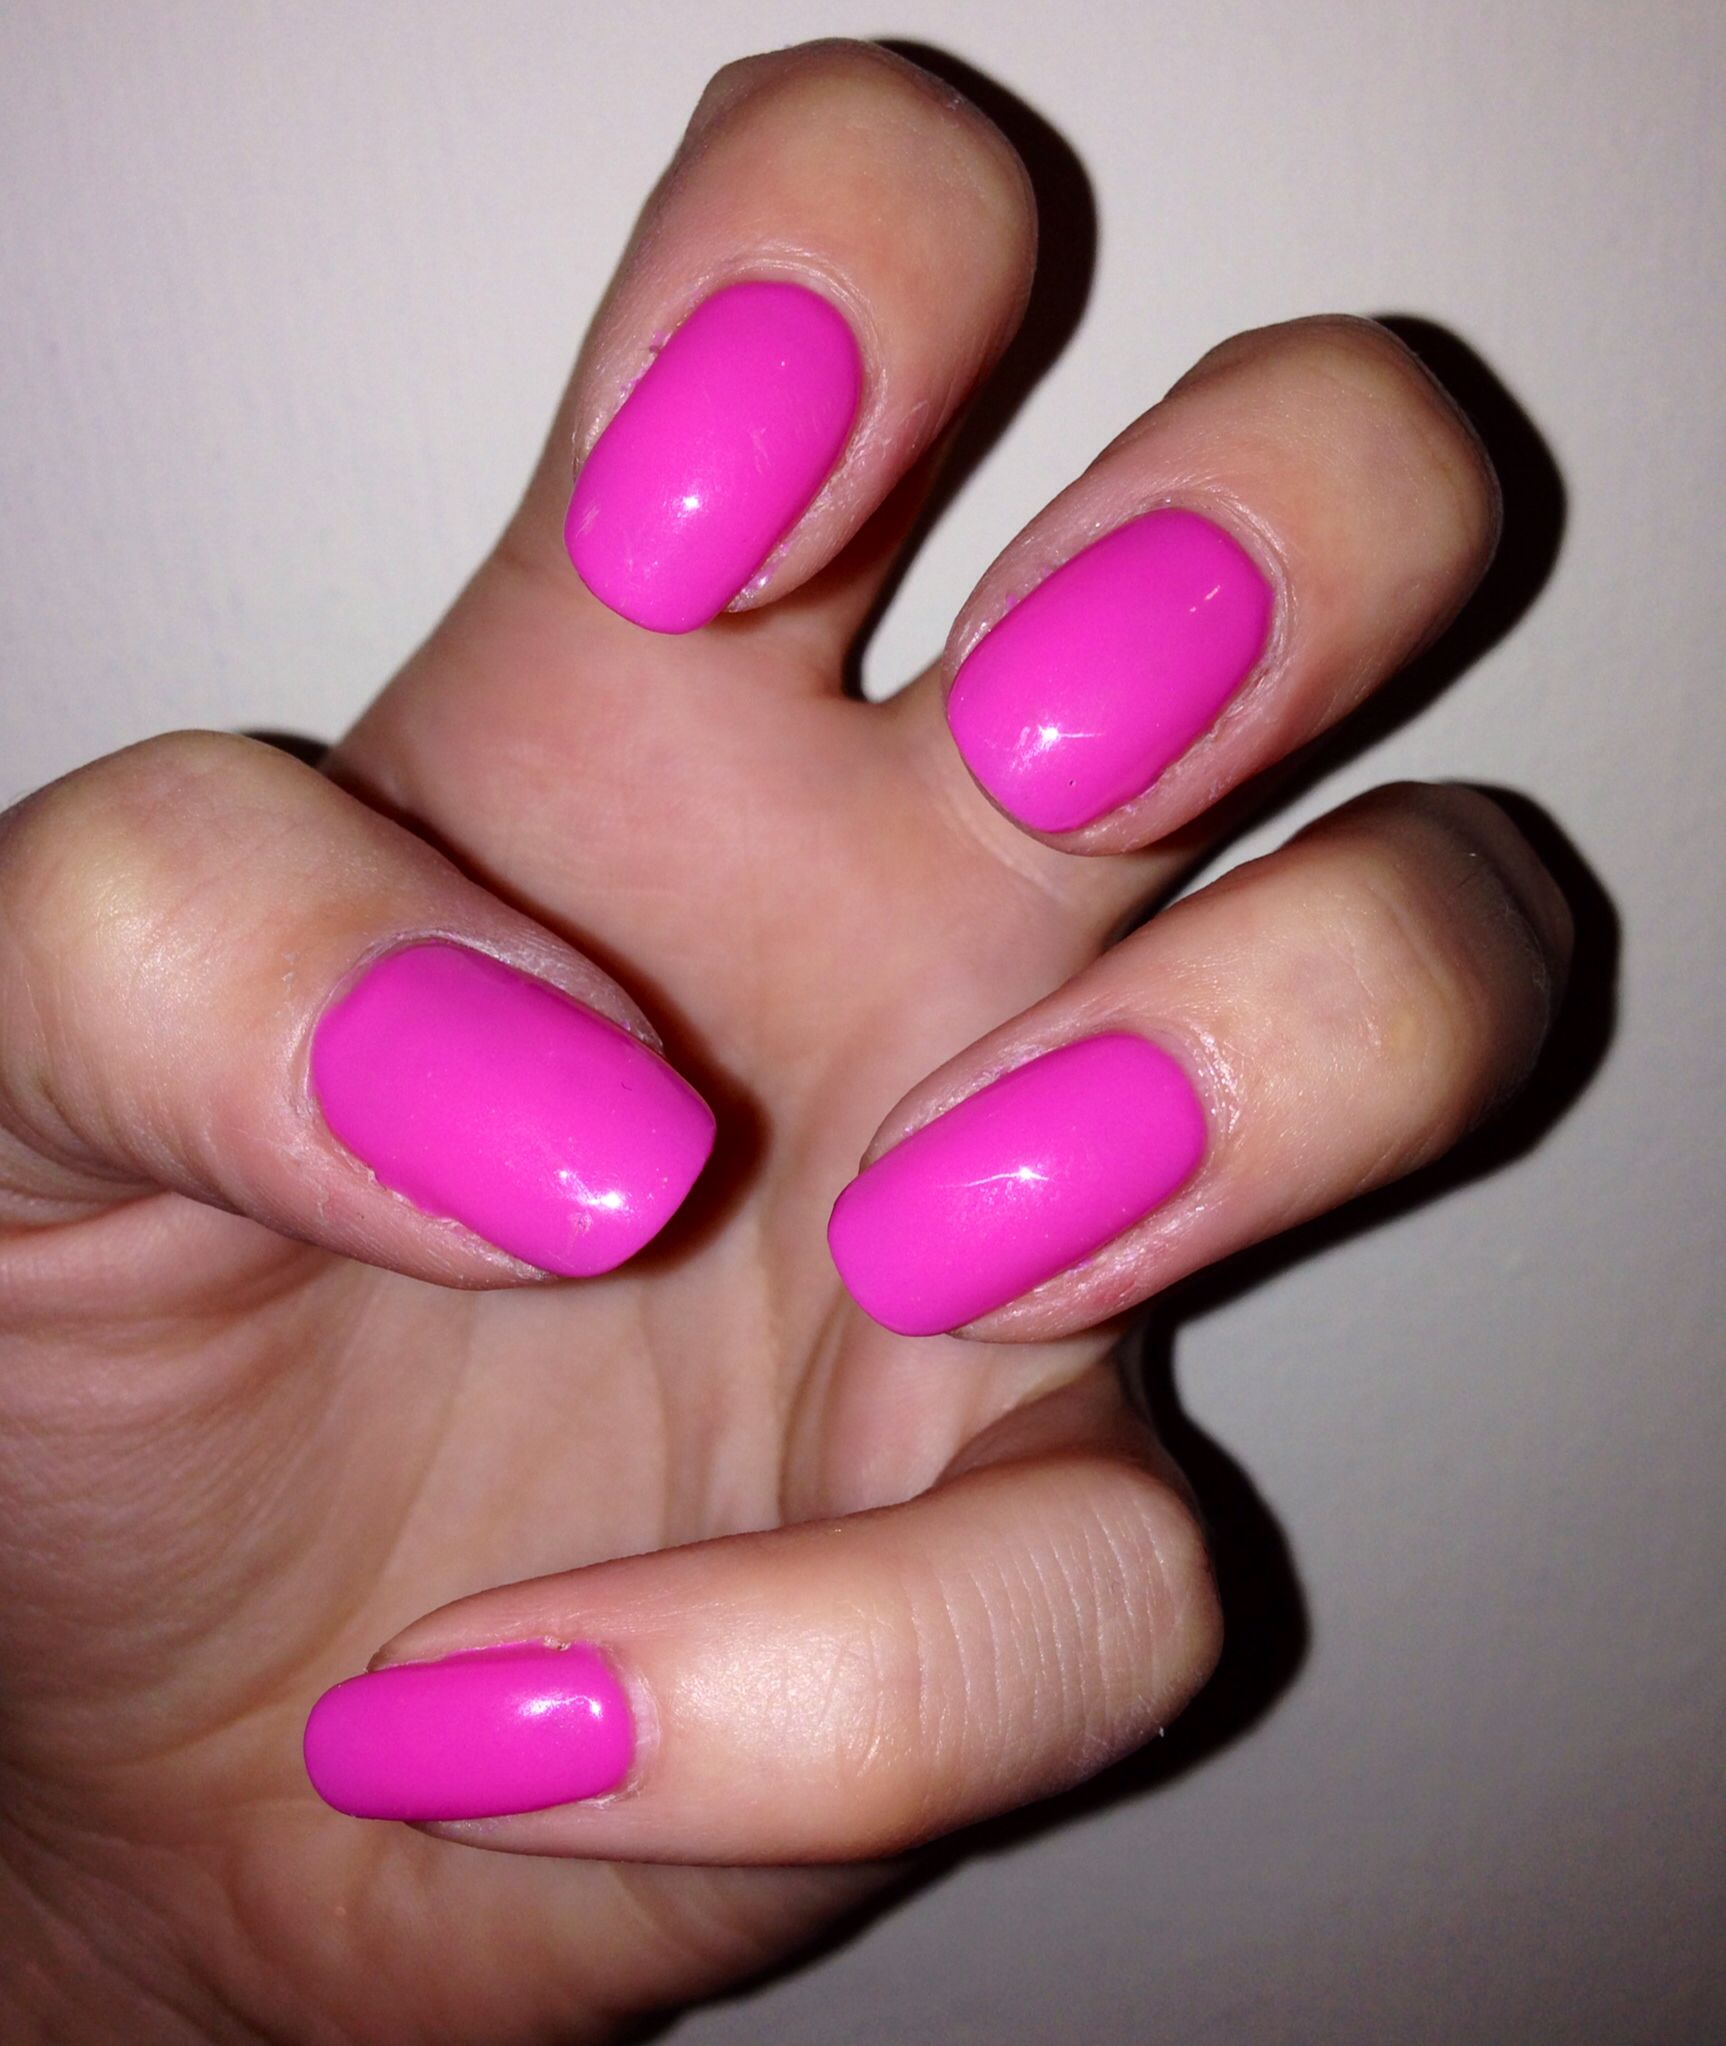 Popular fashion nails uxbridge - Find This Pin And More On Nails